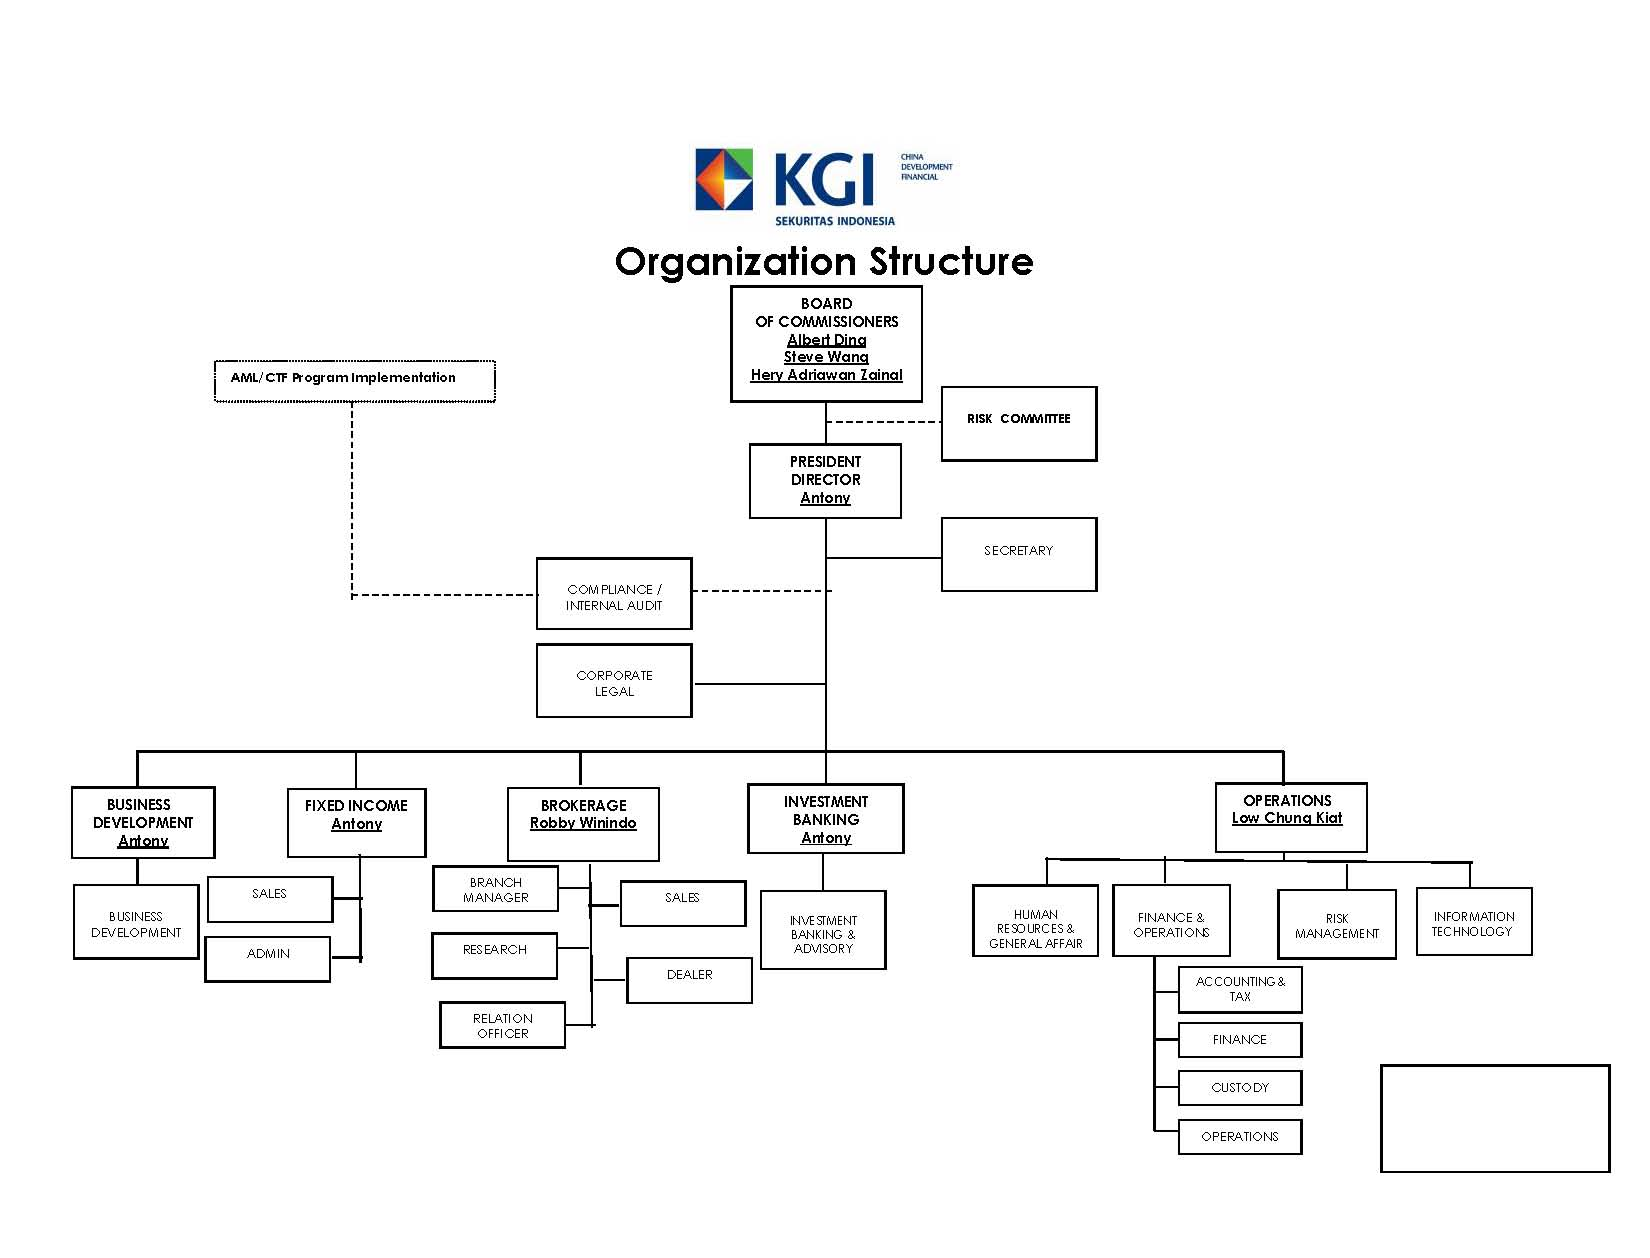 KGI Indonesia Organization Structure